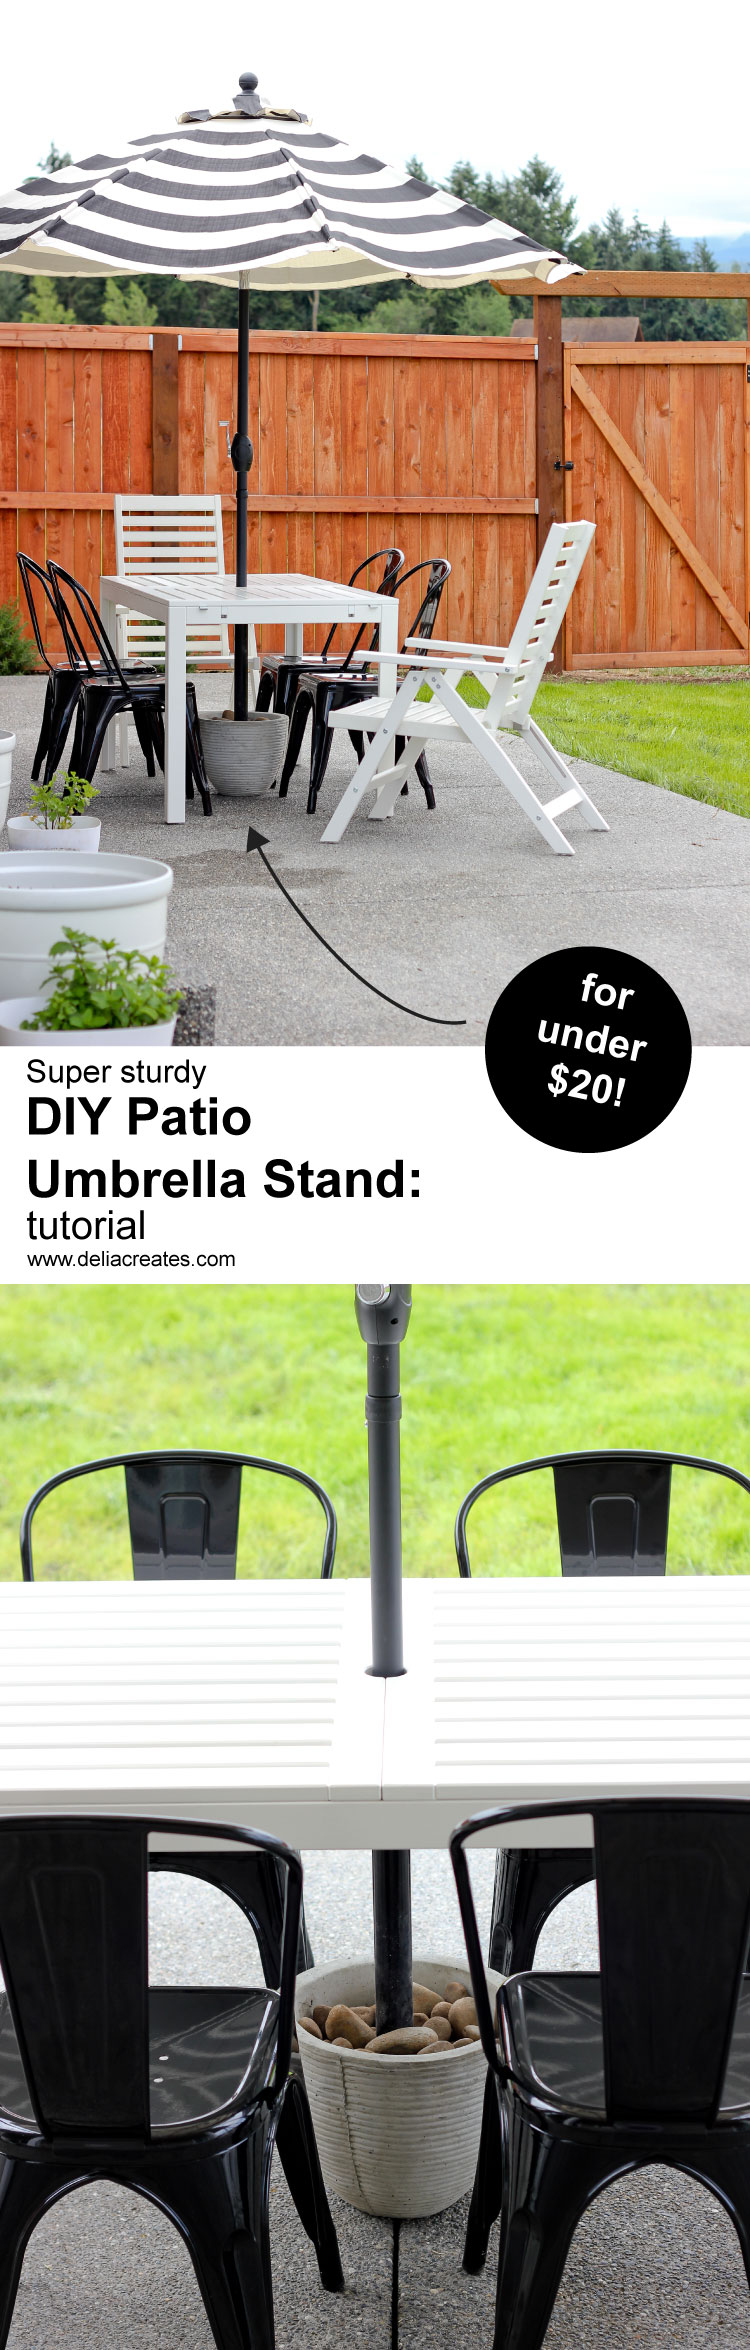 ideas diy patio pipe drive pole and pictures half incredible images umbrellastandcollage cover stand umbrella also motor fabulous